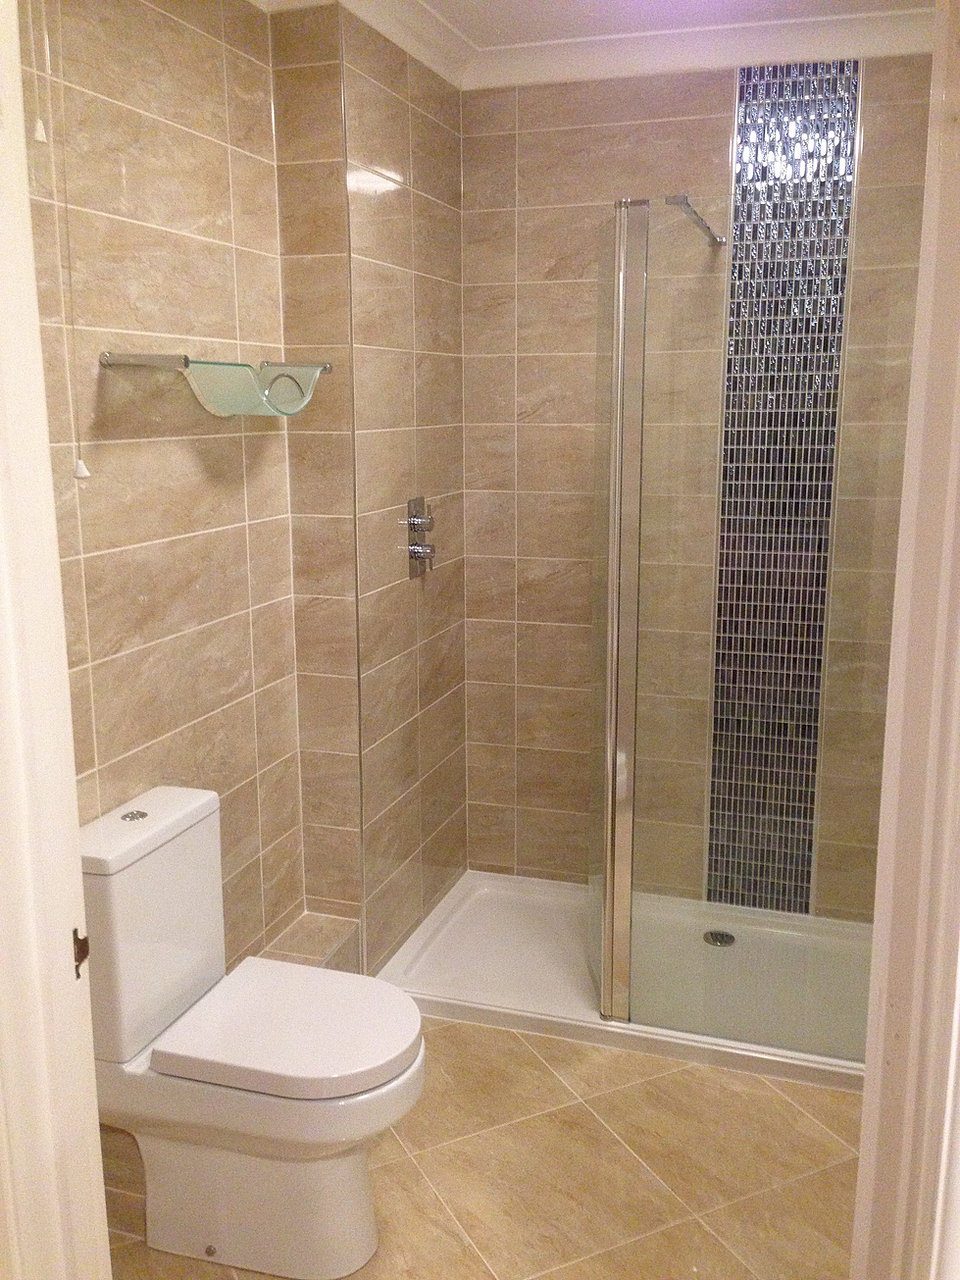 Shaun taylor bathrooms fully tiled shower rooms Bathroom tile showers